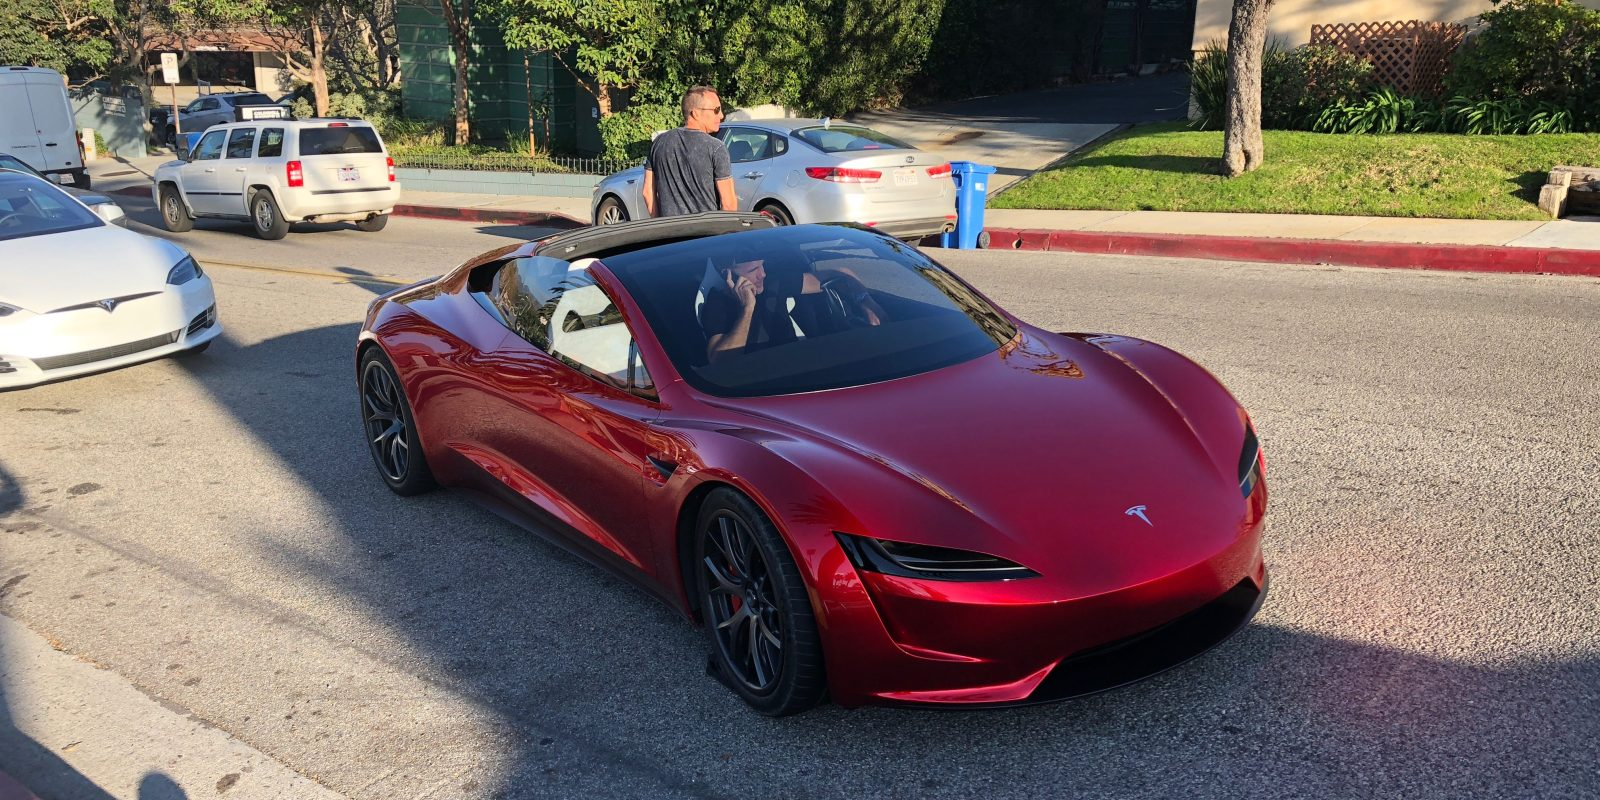 Tesla next-gen Roadster is 'evolving into something better than prototype in every way'